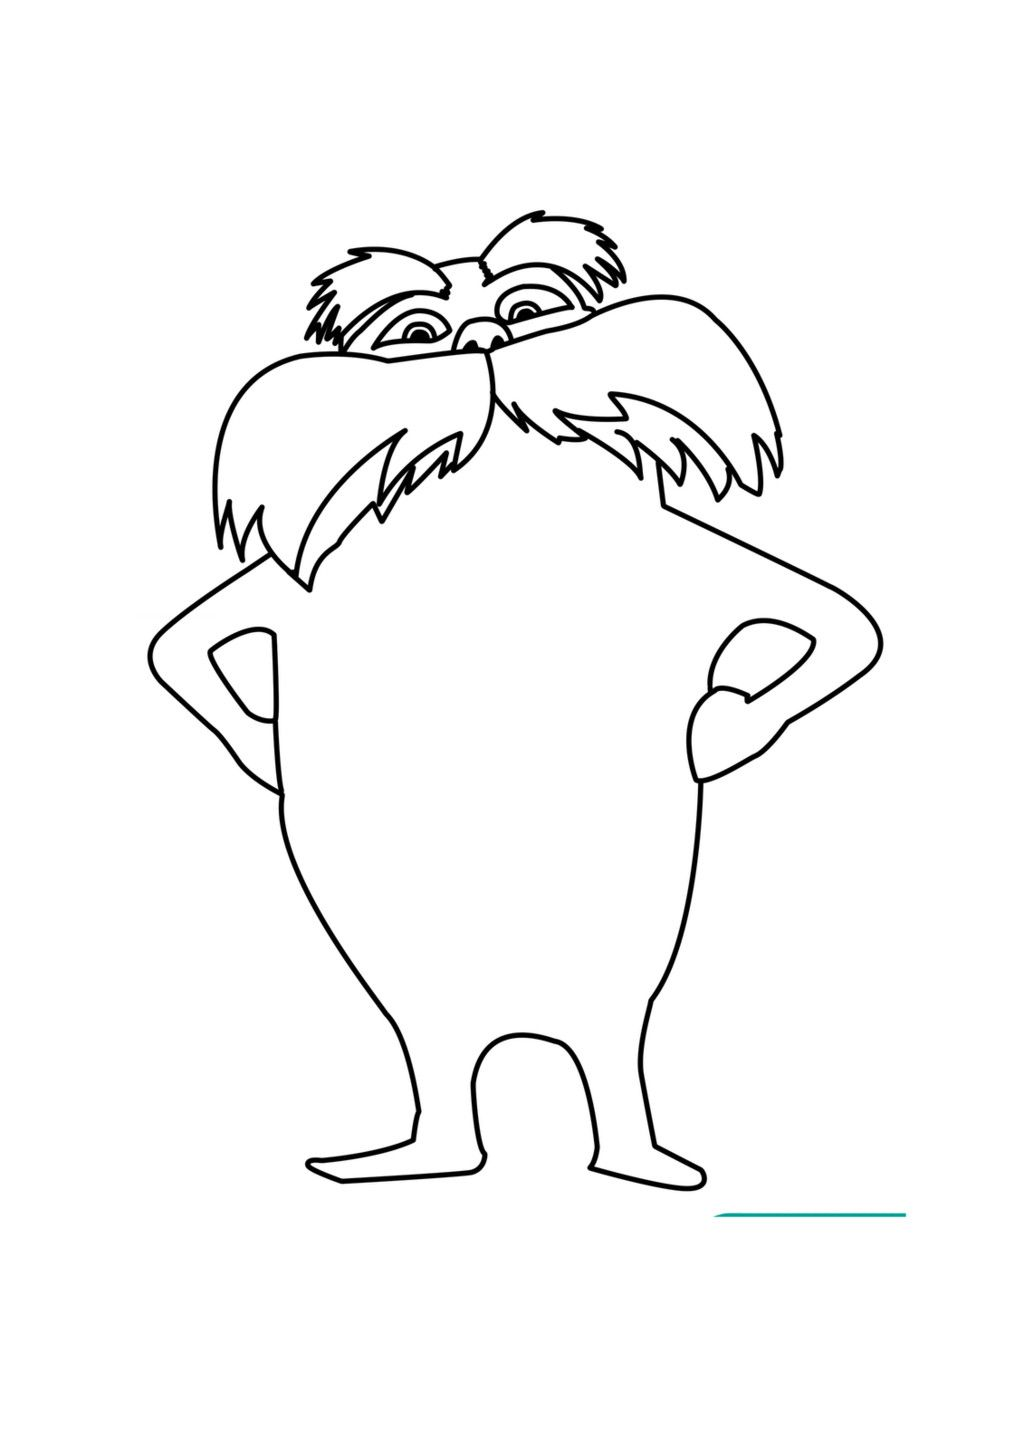 lorax coloring sheet lorax coloring pages the lorax dr seuss coloring pages coloring lorax sheet